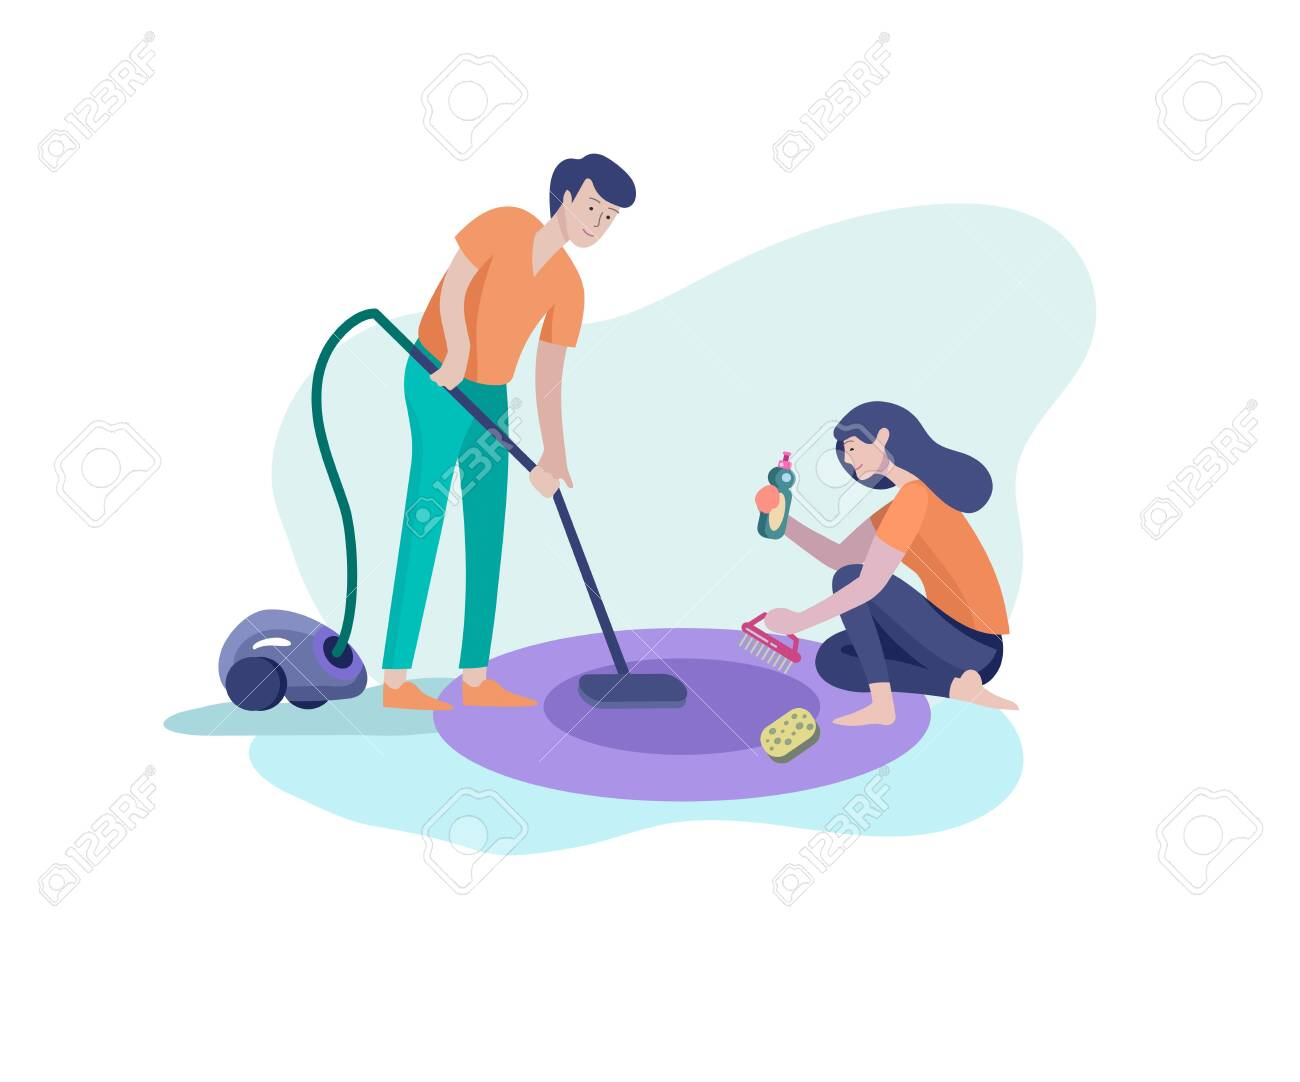 Couple To Wipe The Dishes Royalty Free Cliparts, Vectors, And Stock  Illustration. Image 63208950.